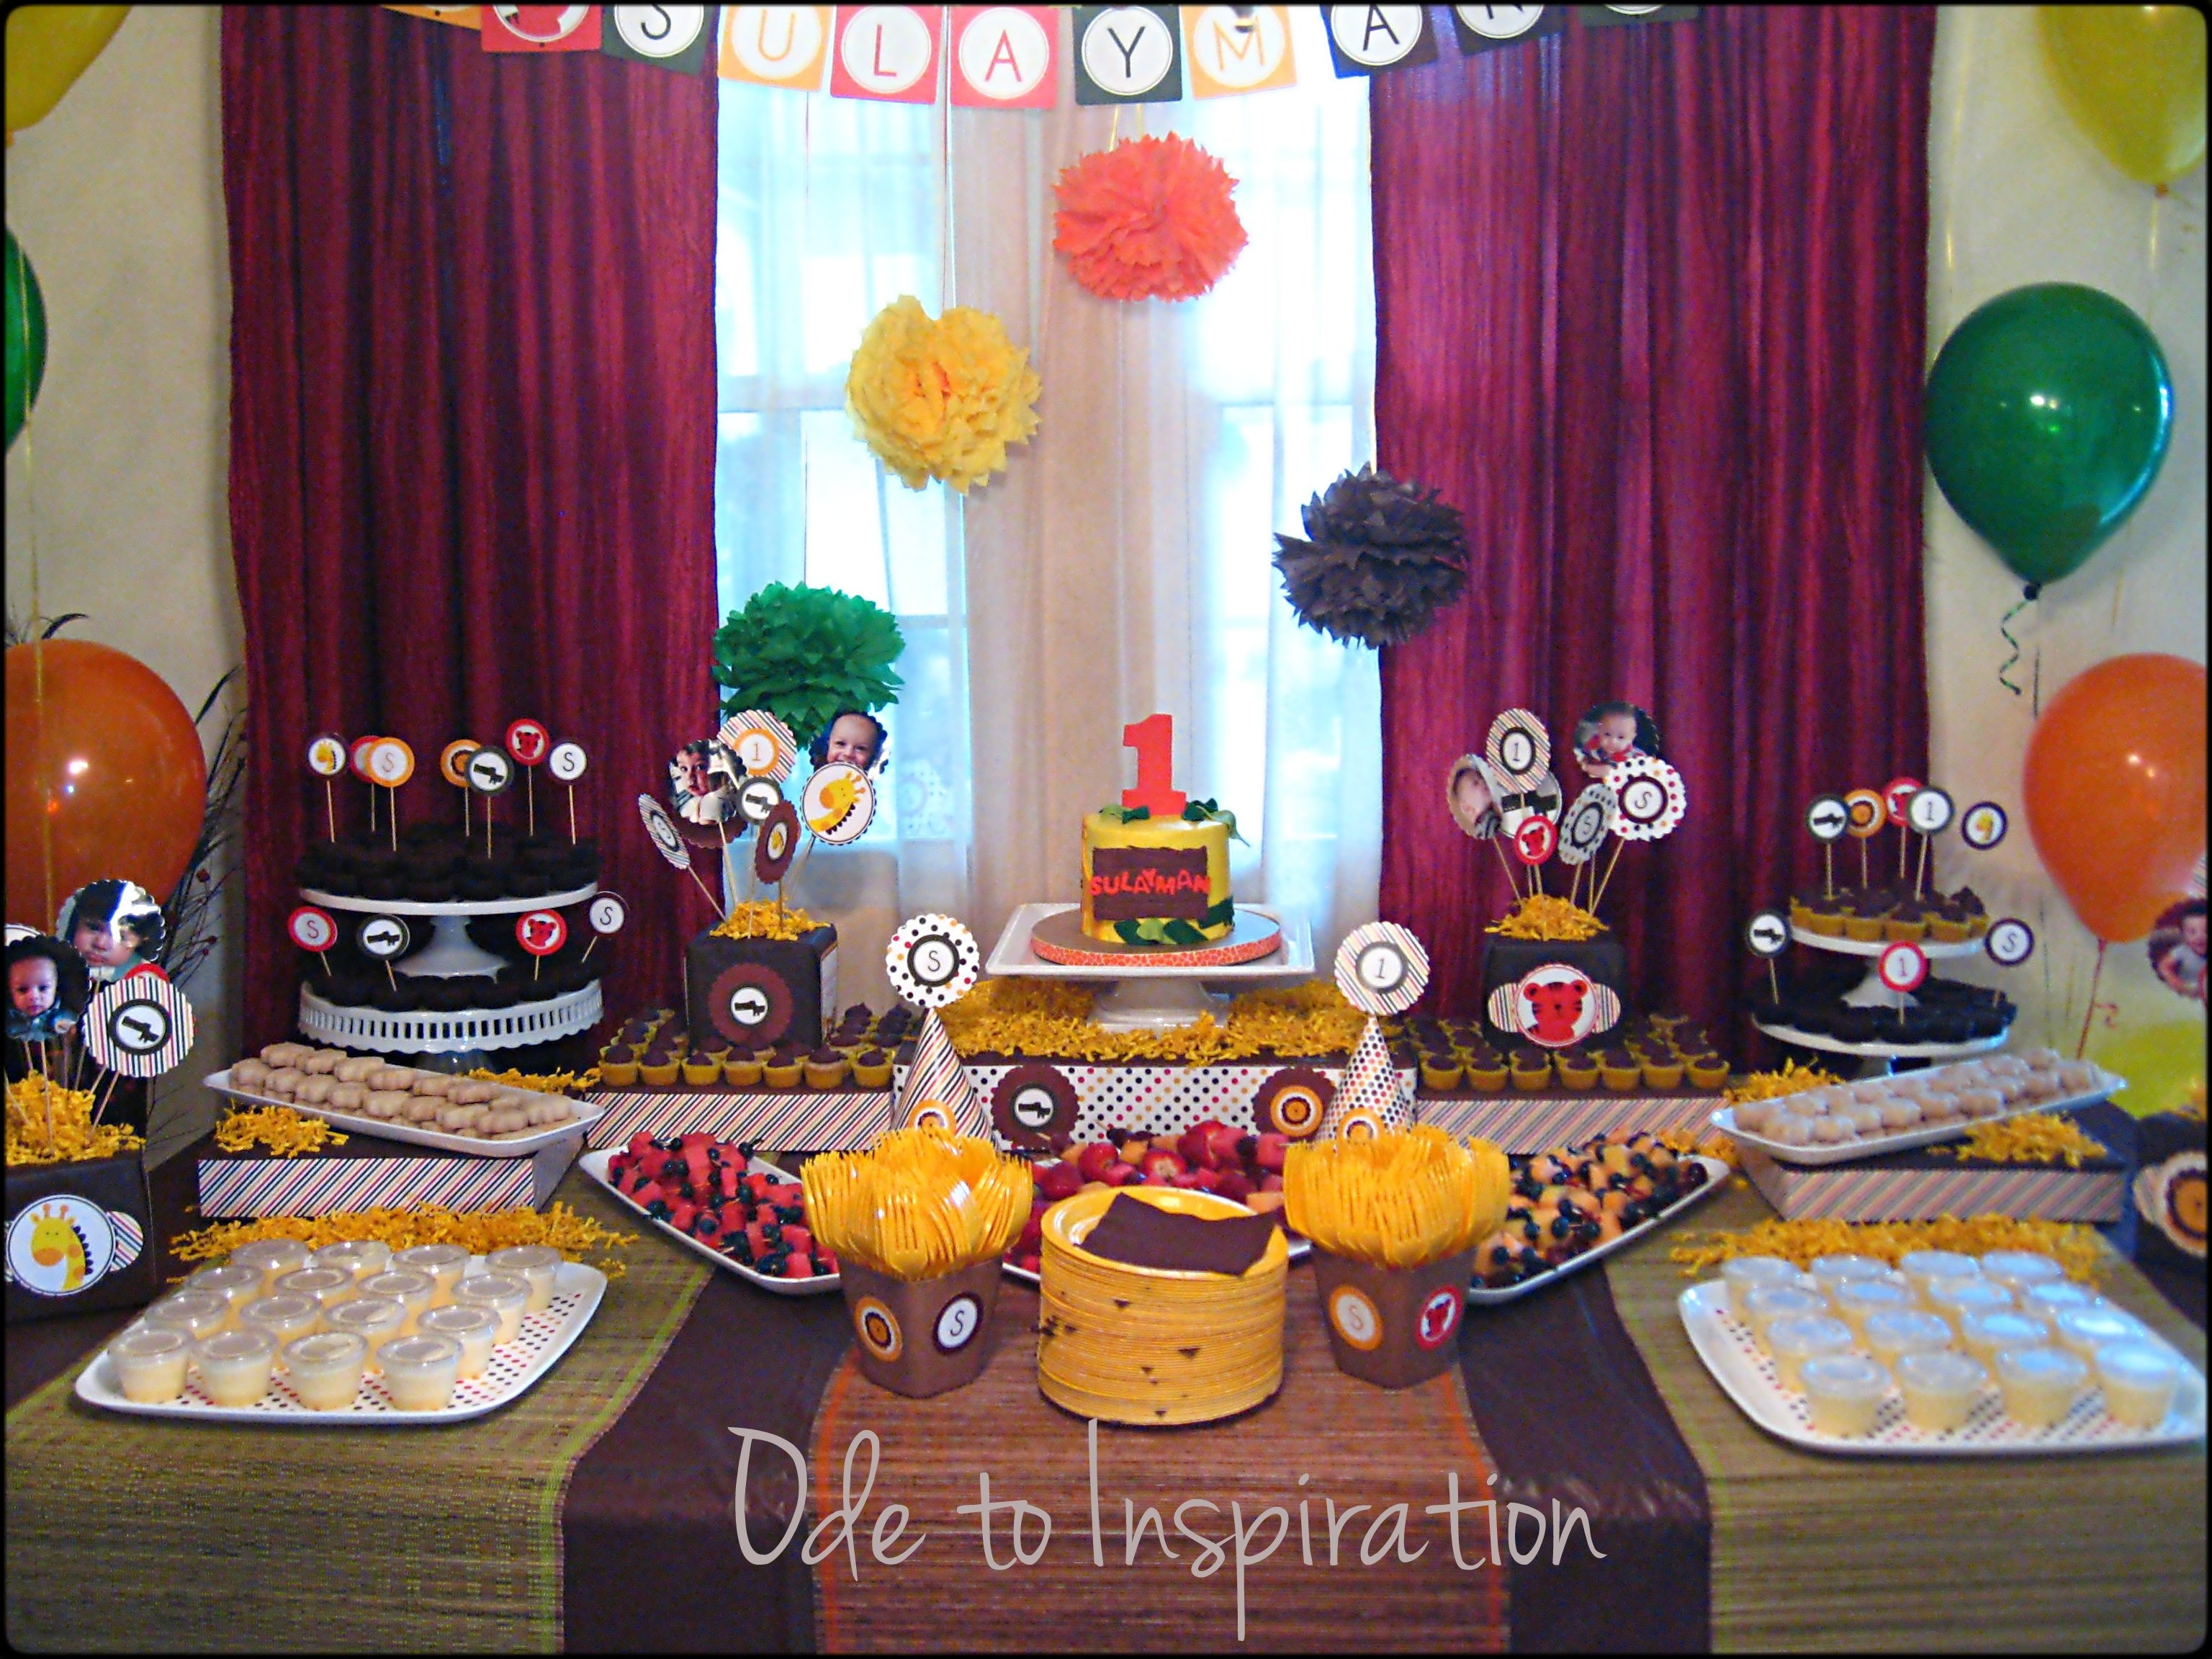 10 Fabulous Themed Birthday Party Ideas For Adults birthday party theme ideas for adults unique 21st loversiq 3